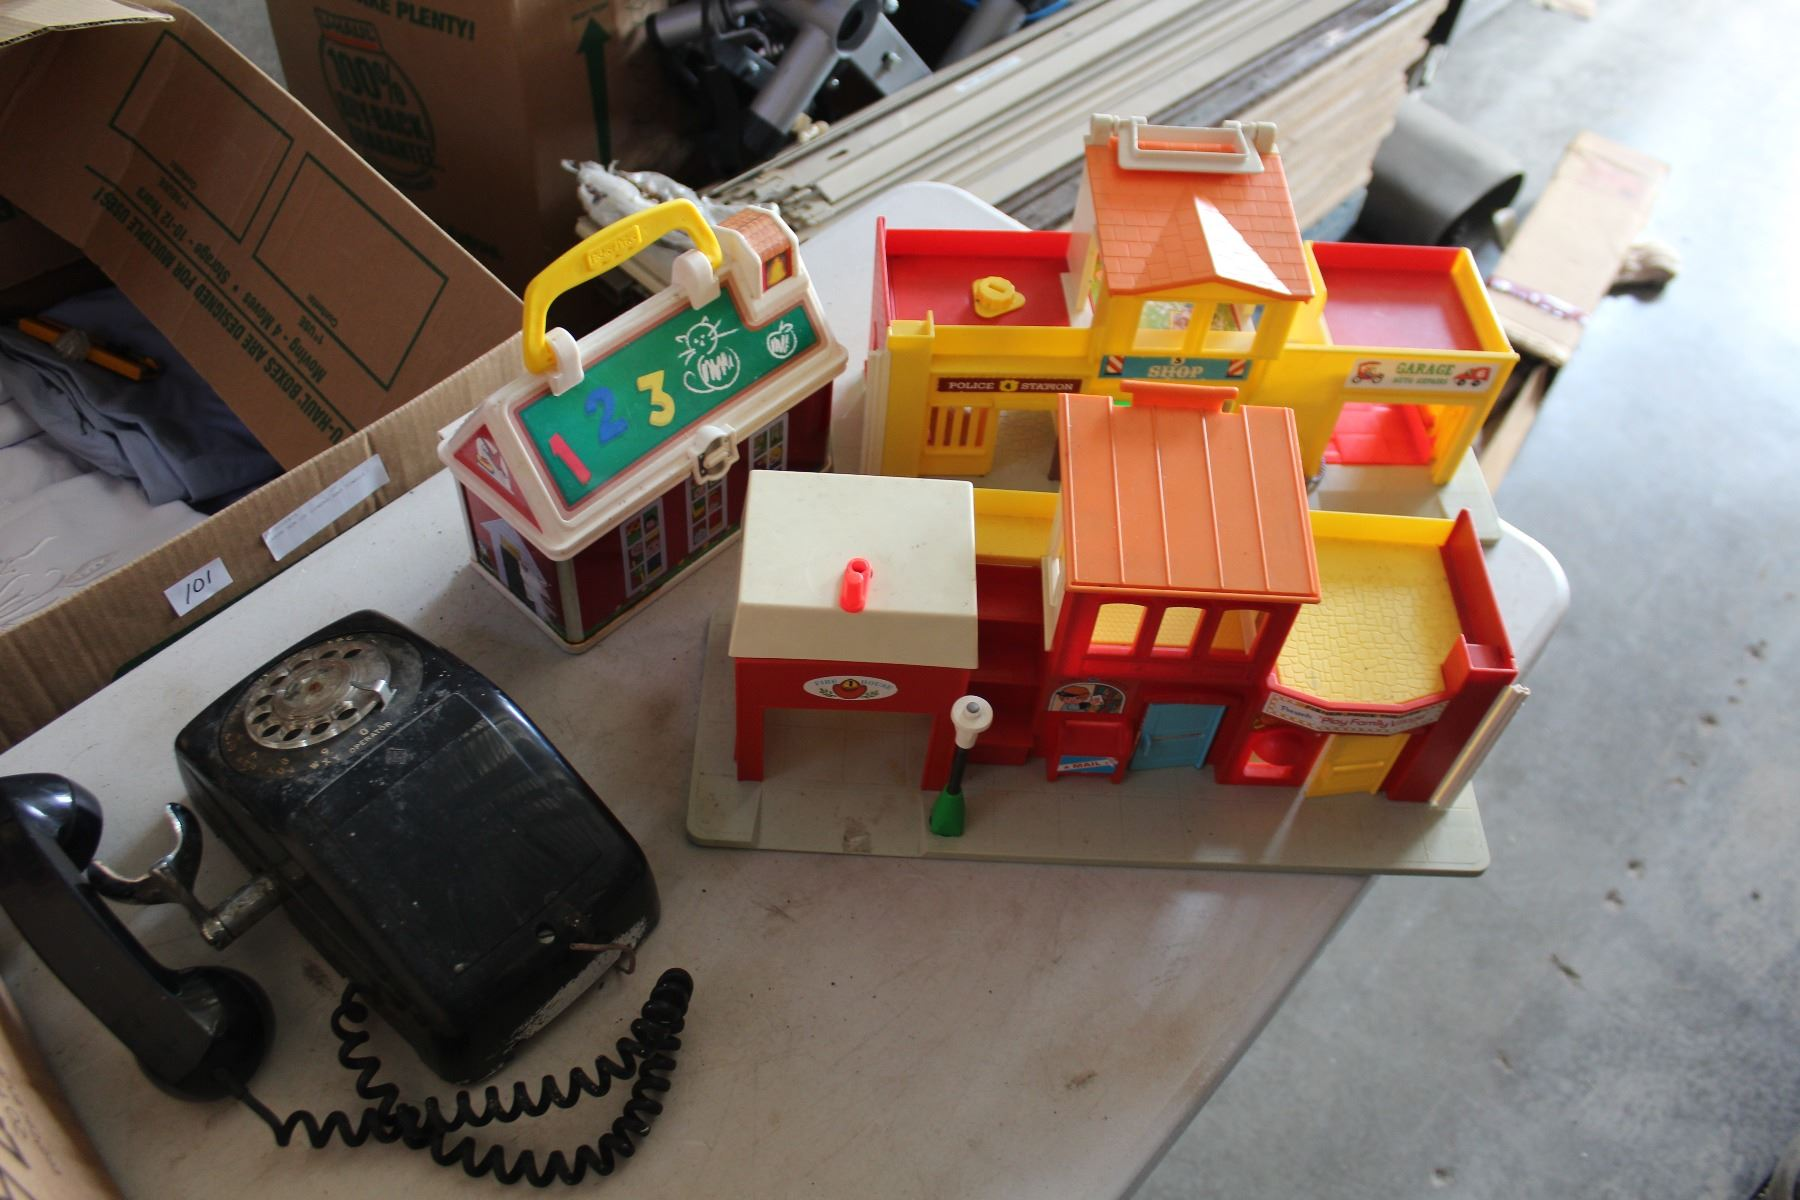 hight resolution of image 1 vintage fisher price toys and rotary phone